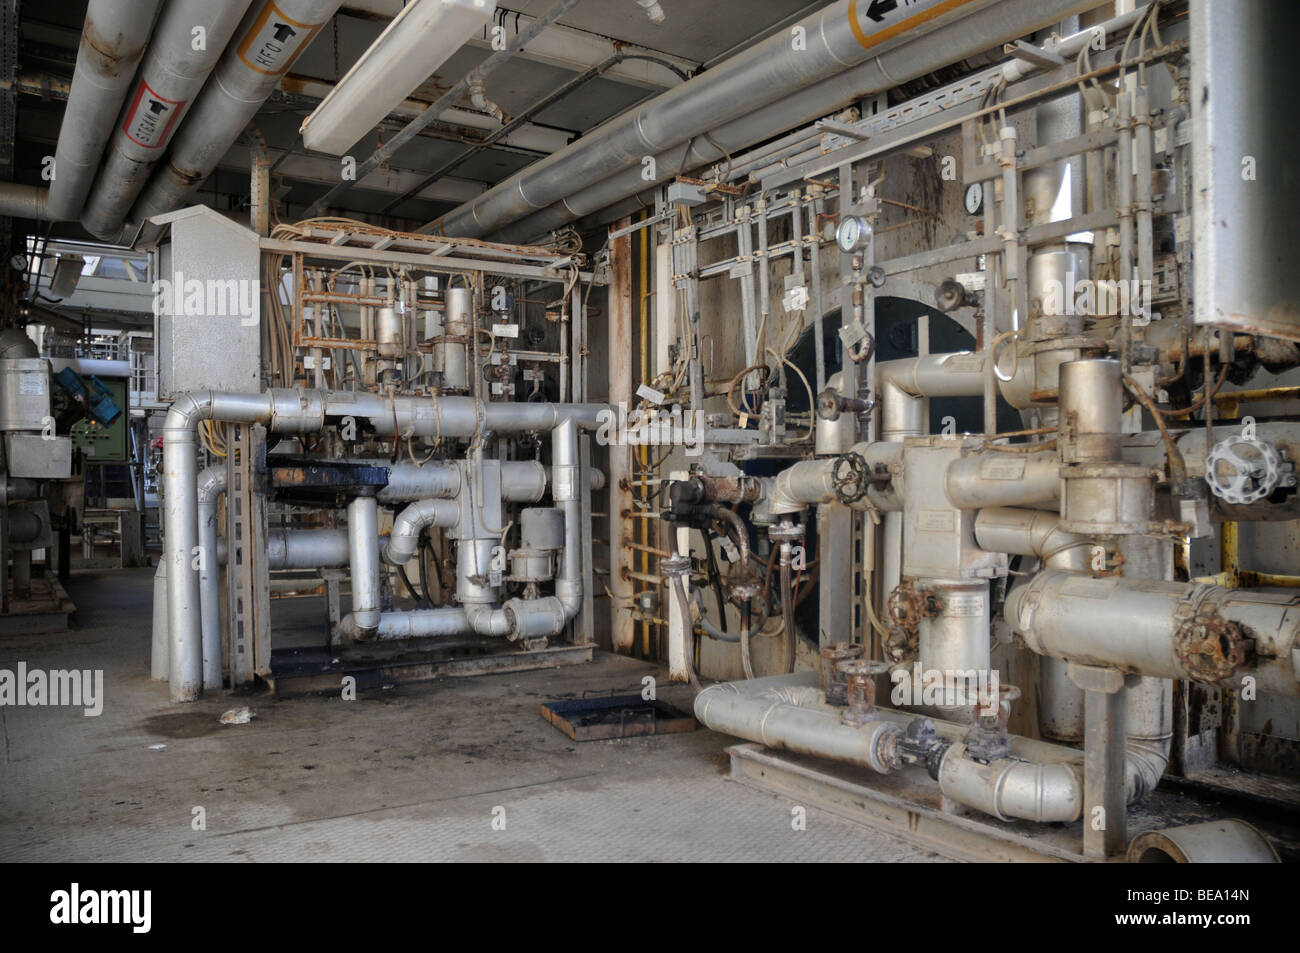 A section of a power plant station in Malta - Stock Image